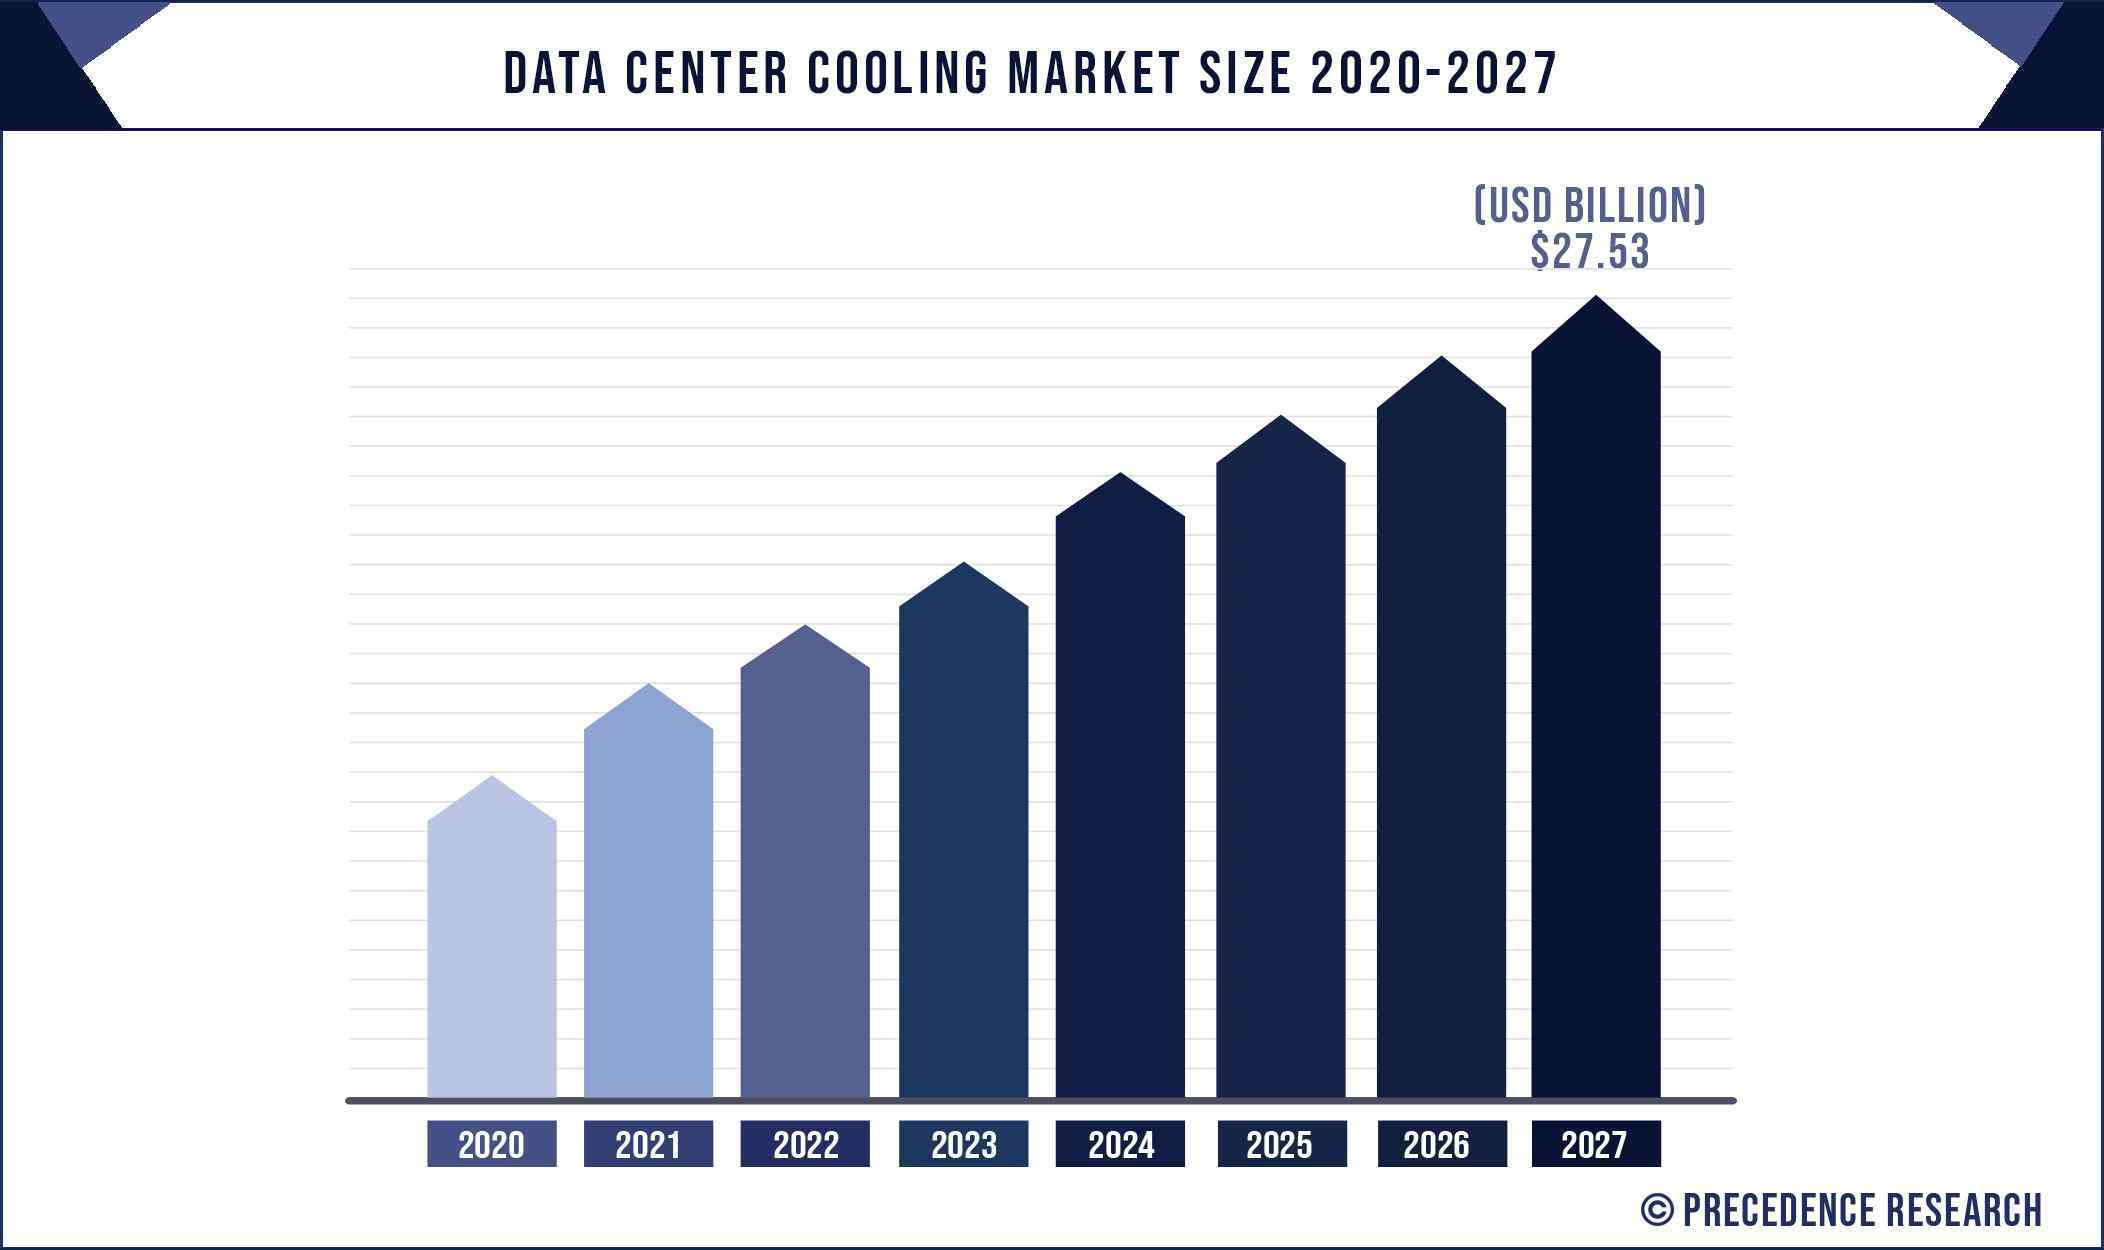 Data Center Cooling Market Size 2020 to 2027